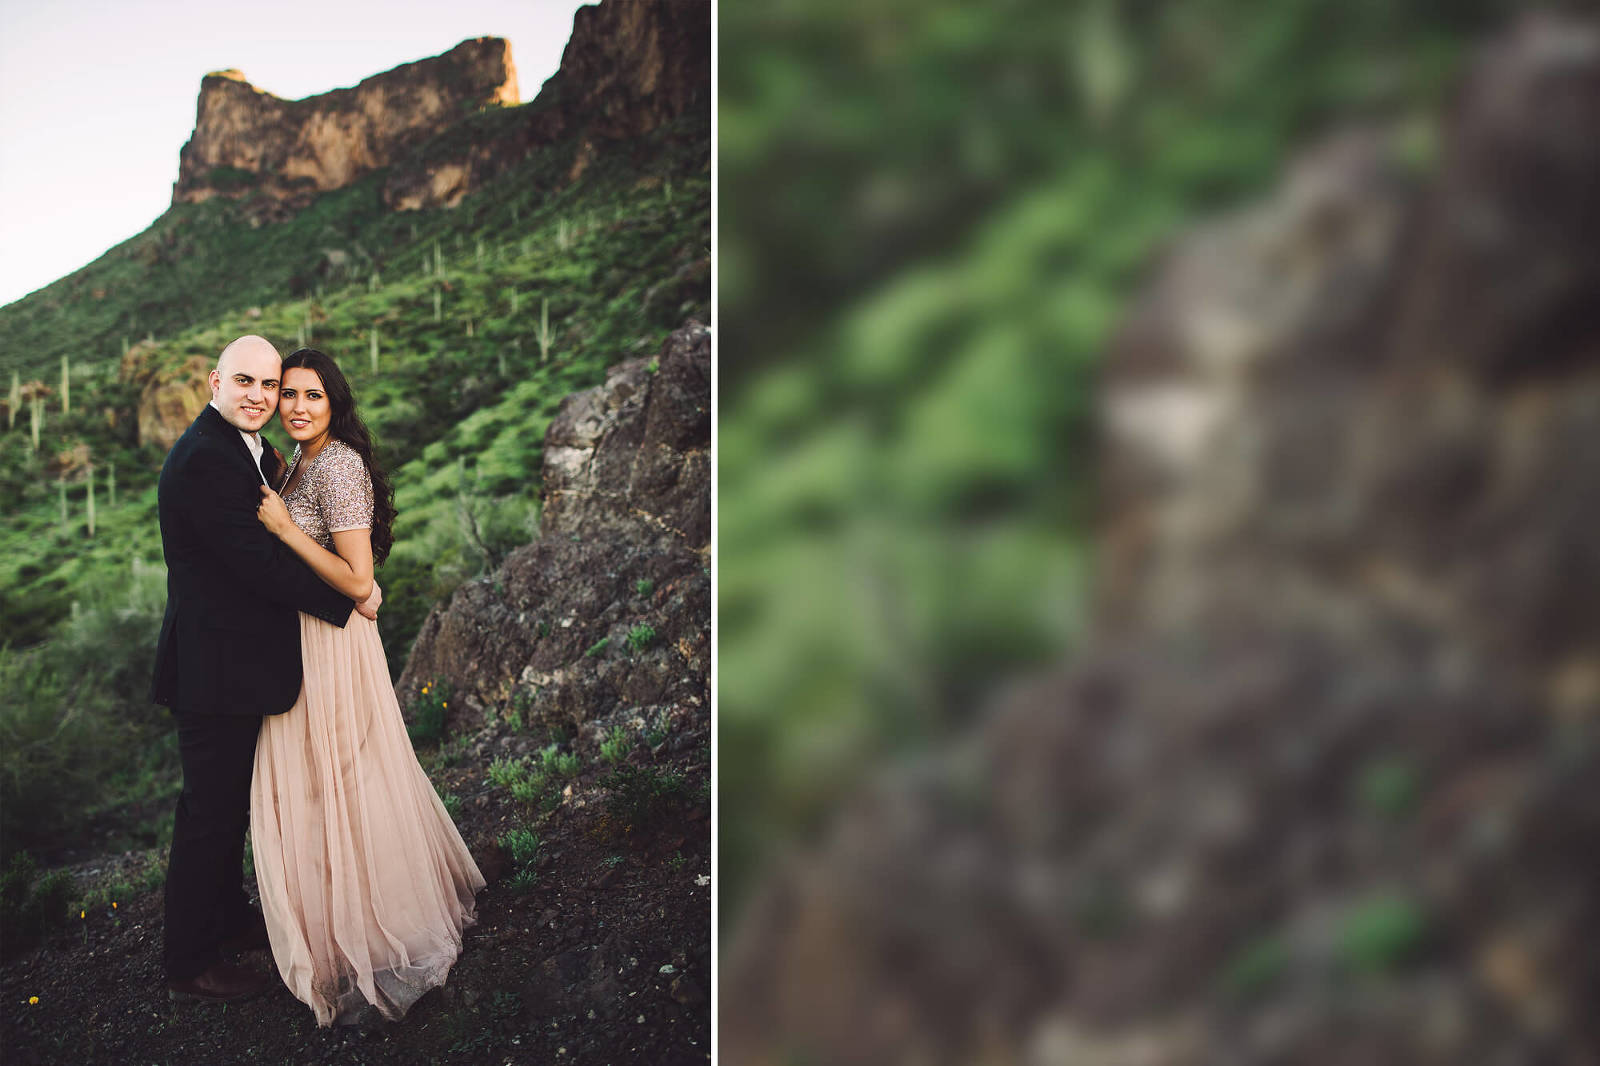 A loving couple celebrates their engagement during a sunset photo session at Picacho Peak in Arizona with Belle Vie Photography